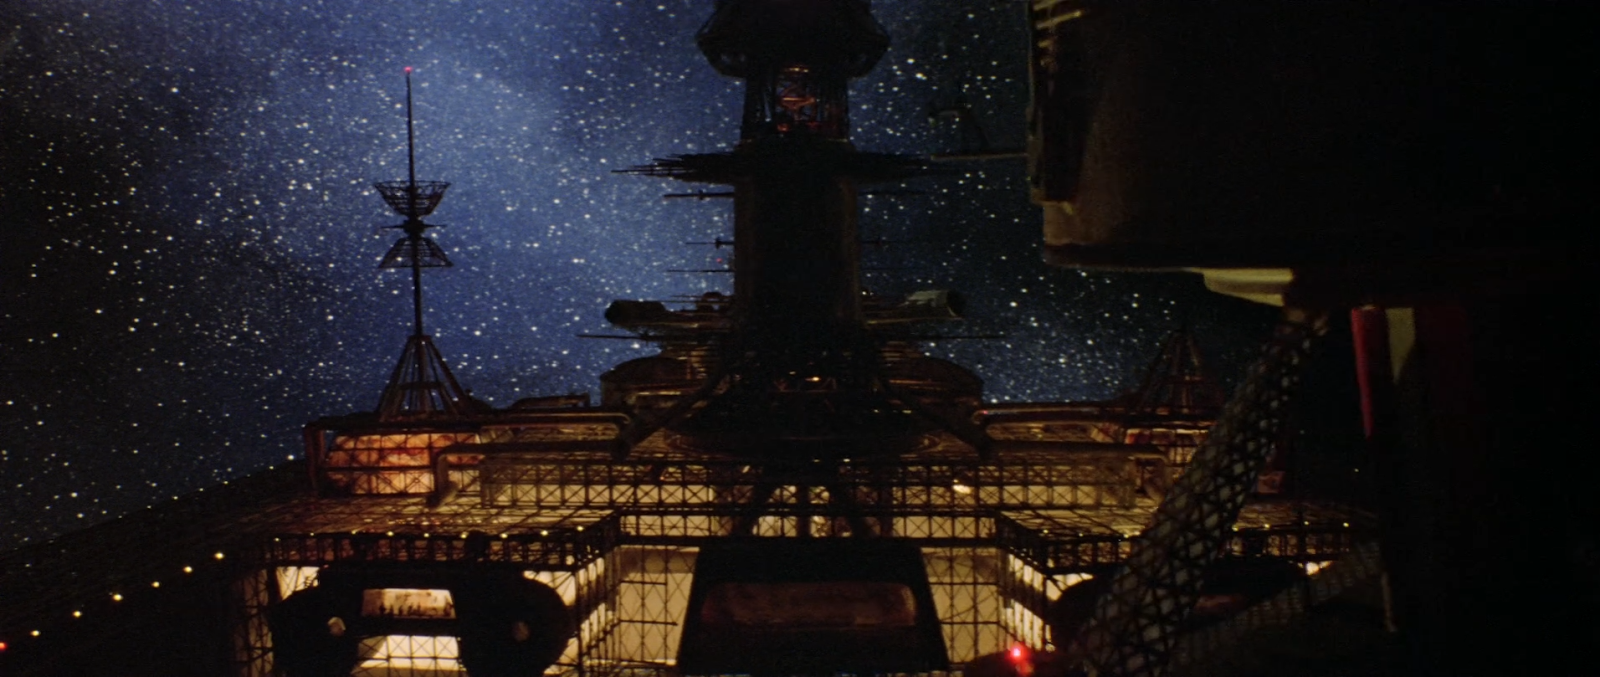 From the Archive: The Black Hole (1979)